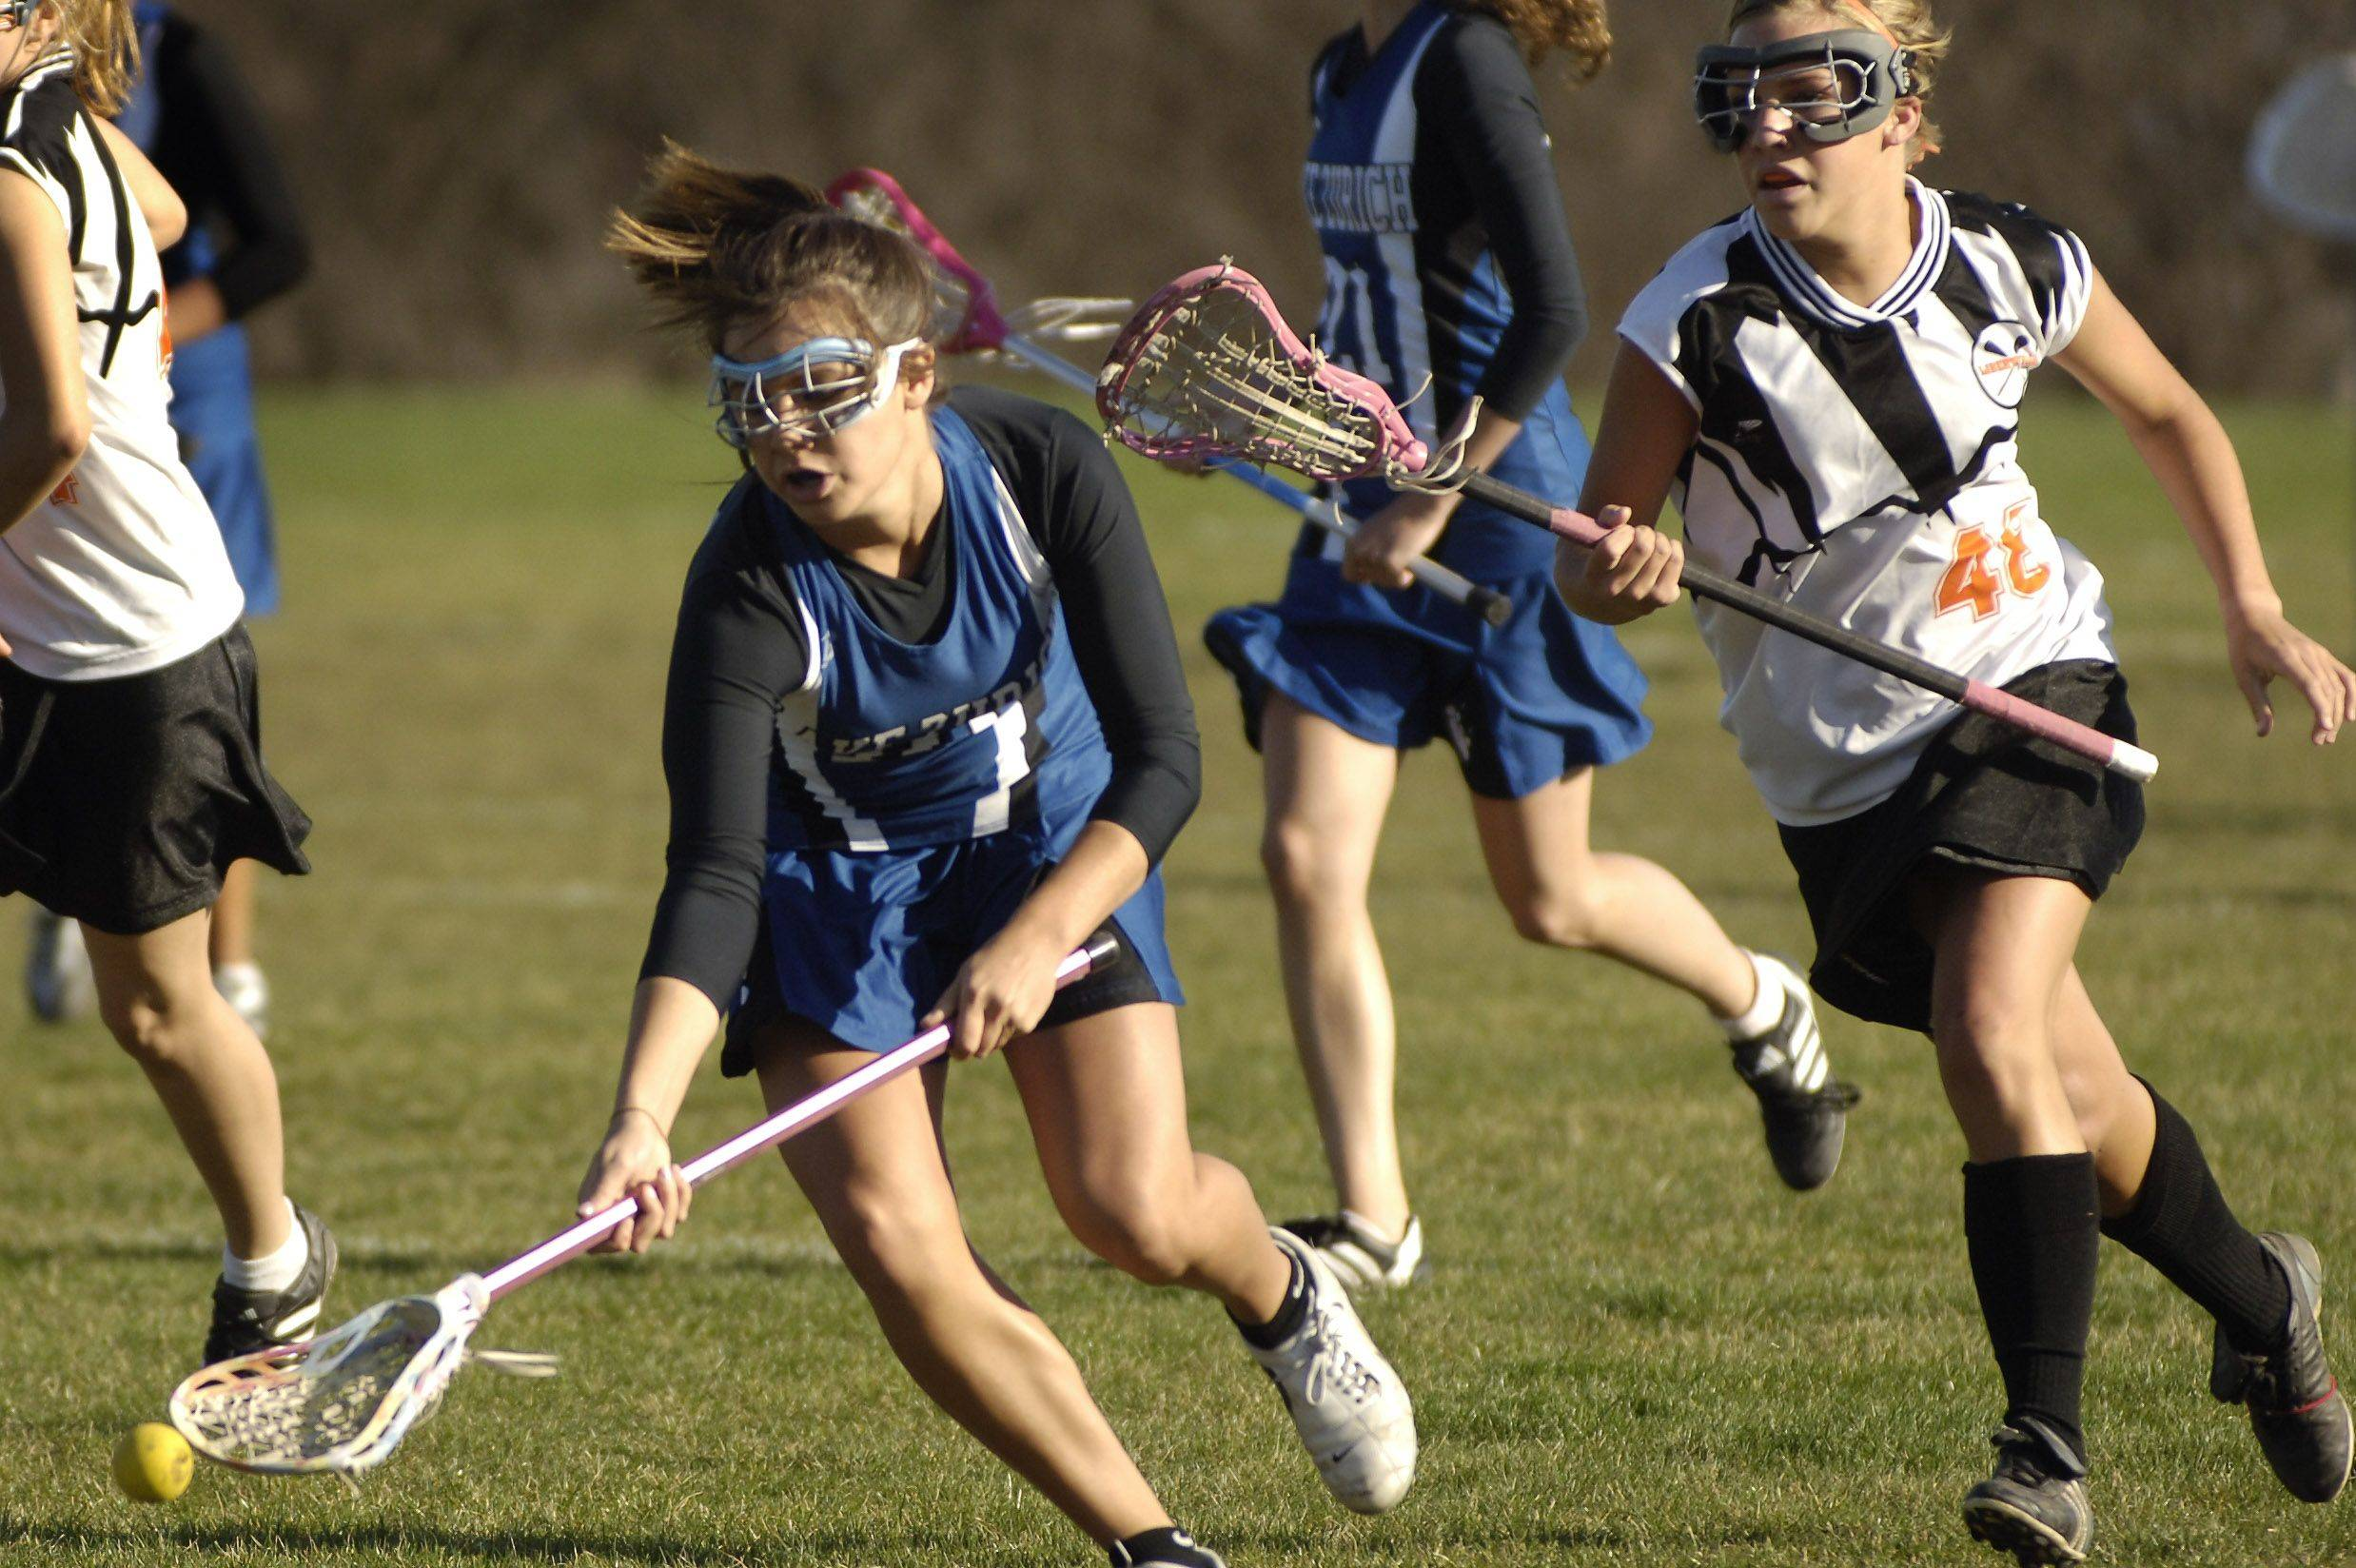 Lake Zurich and Libertyville are among the state's improving girls lacrosse programs, but both will be hard-pressed to crack the dominance of programs like defending champion Loyola and New Trier.